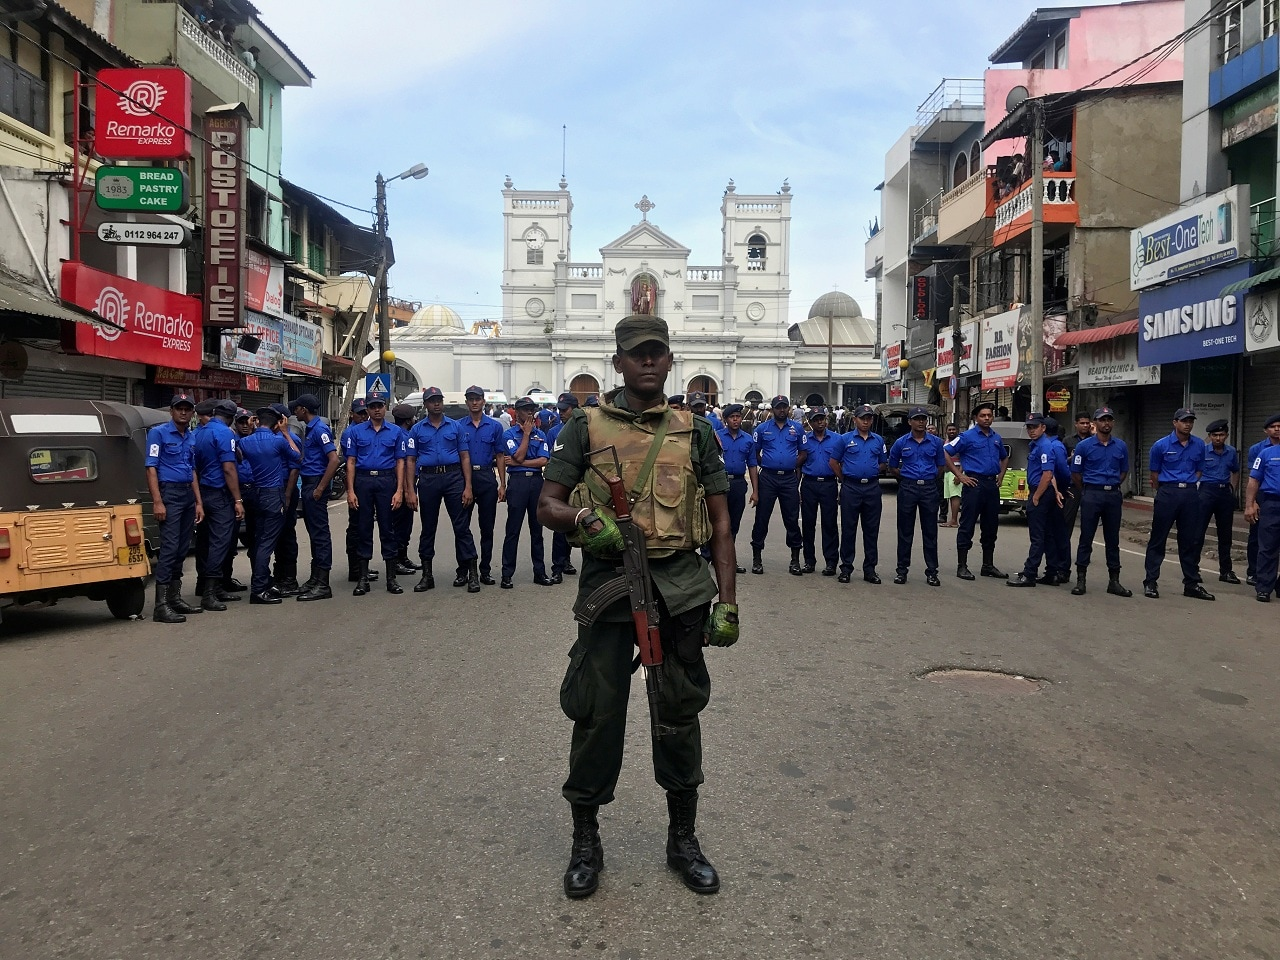 Sri Lankan military officials stand guard in front of the St. Anthony's Shrine, Kochchikade church after an explosion in Colombo, Sri Lanka April 21, 2019. (REUTERS/Dinuka Liyanawatte)